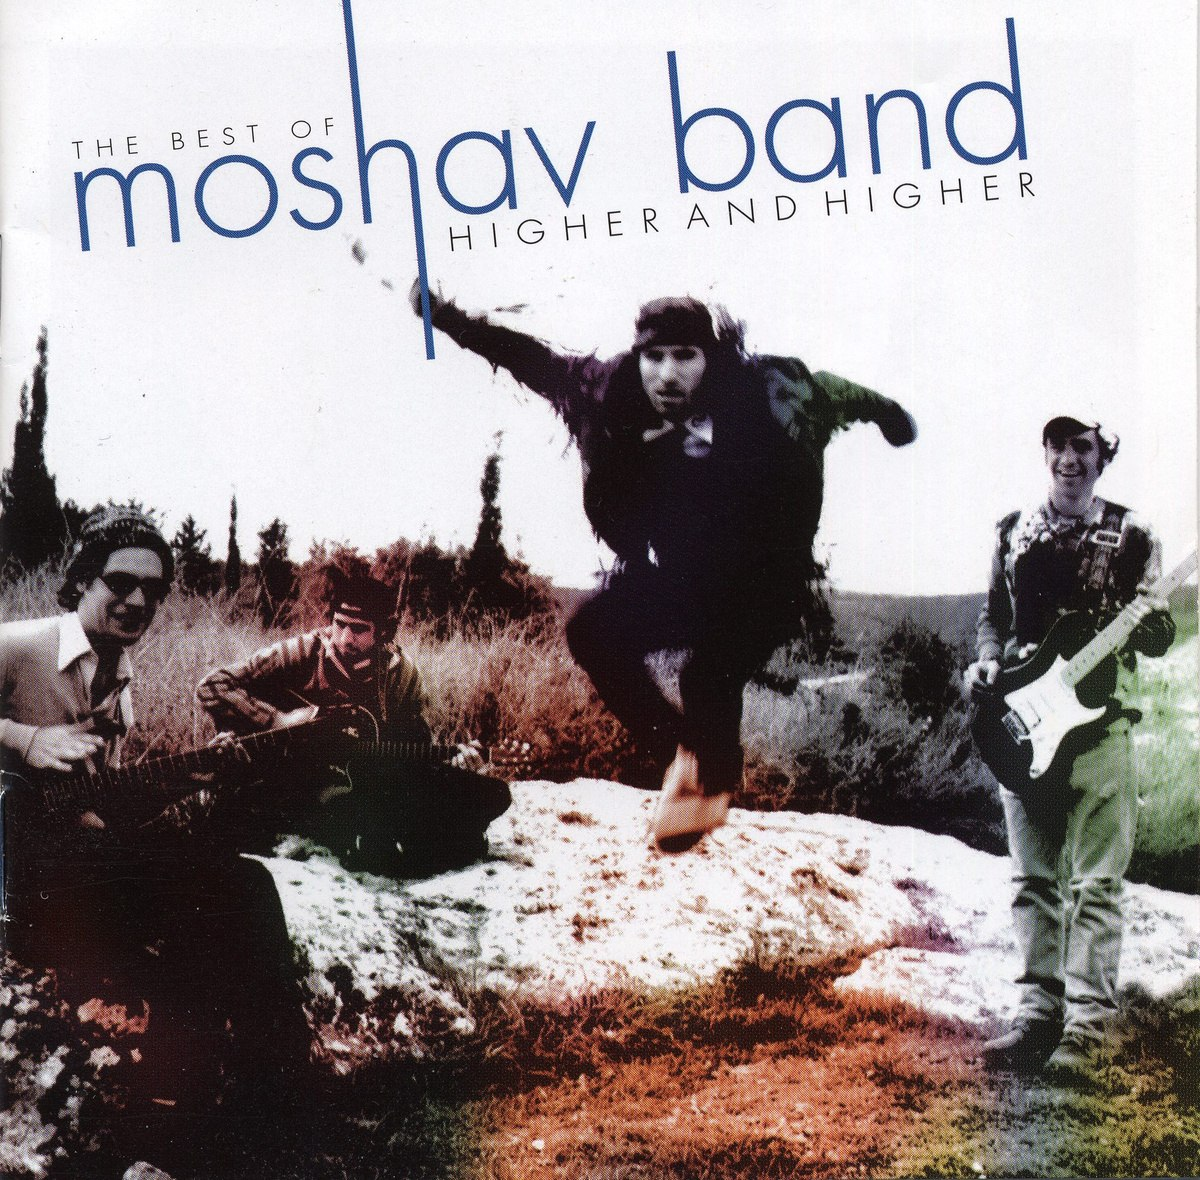 The Best of Moshav Band - Higher and Higher (2005)